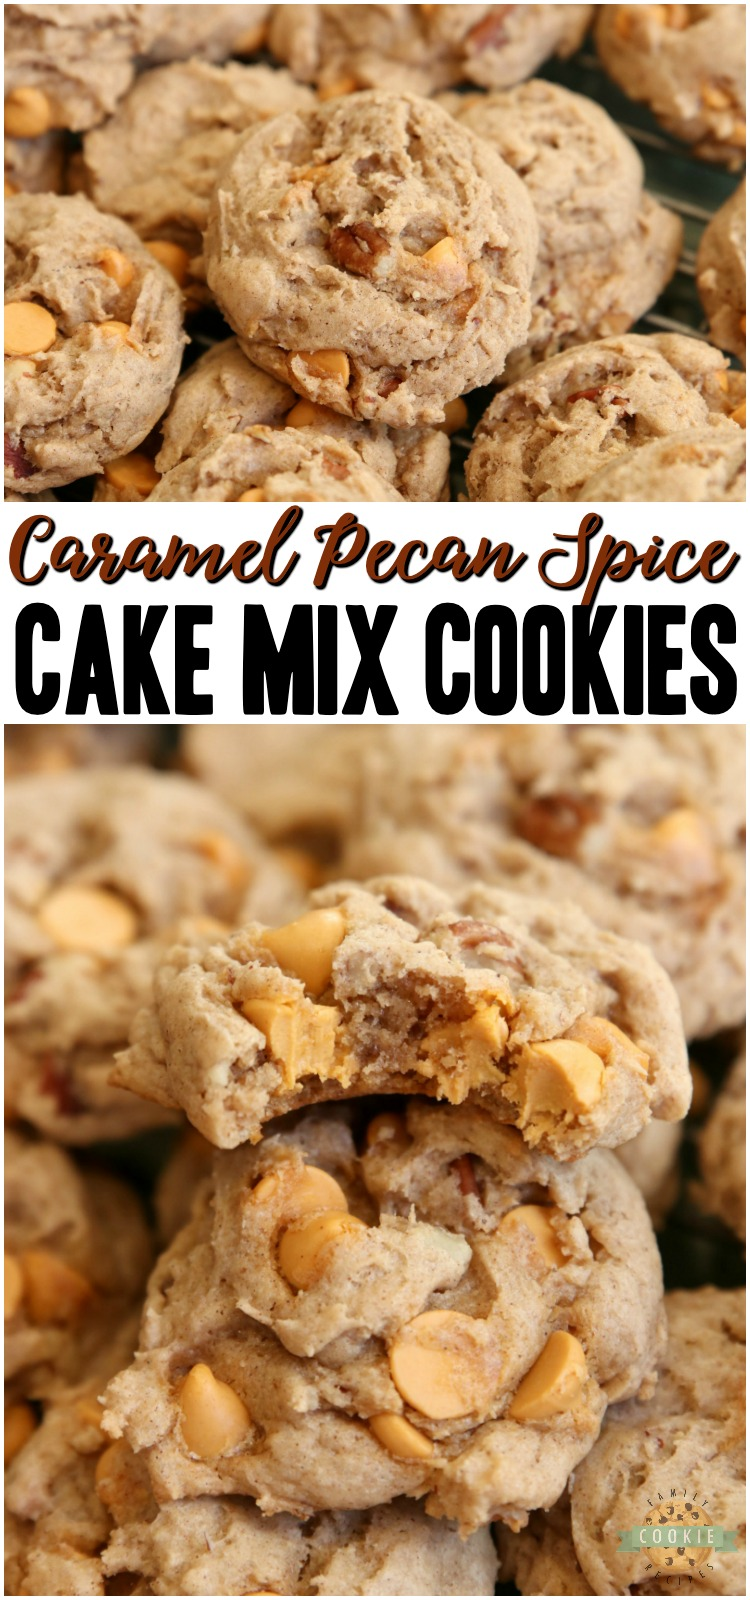 Caramel Spice Cake Mix Cookies made with just 5 ingredients! Soft & chewy spiced cookies with crunchy pecans and sweet caramel baking chips. Perfect Fall cookie recipe! #cookies #spicecakemix #cakemix #caramel #pecan #baking #dessert #recipe from FAMILY COOKIE RECIPES